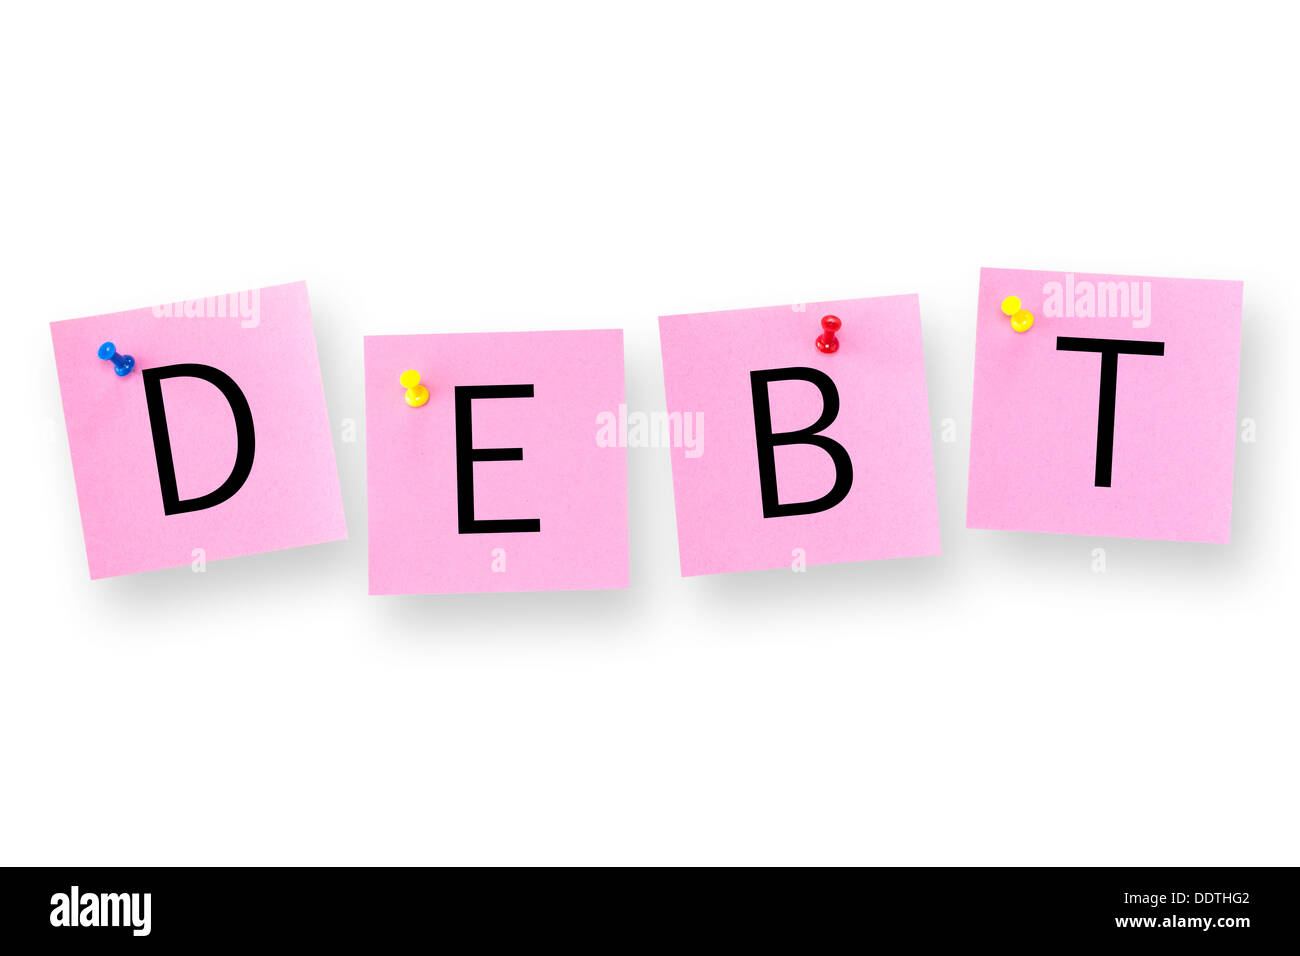 Debt spelled out on white background. Stock Photo